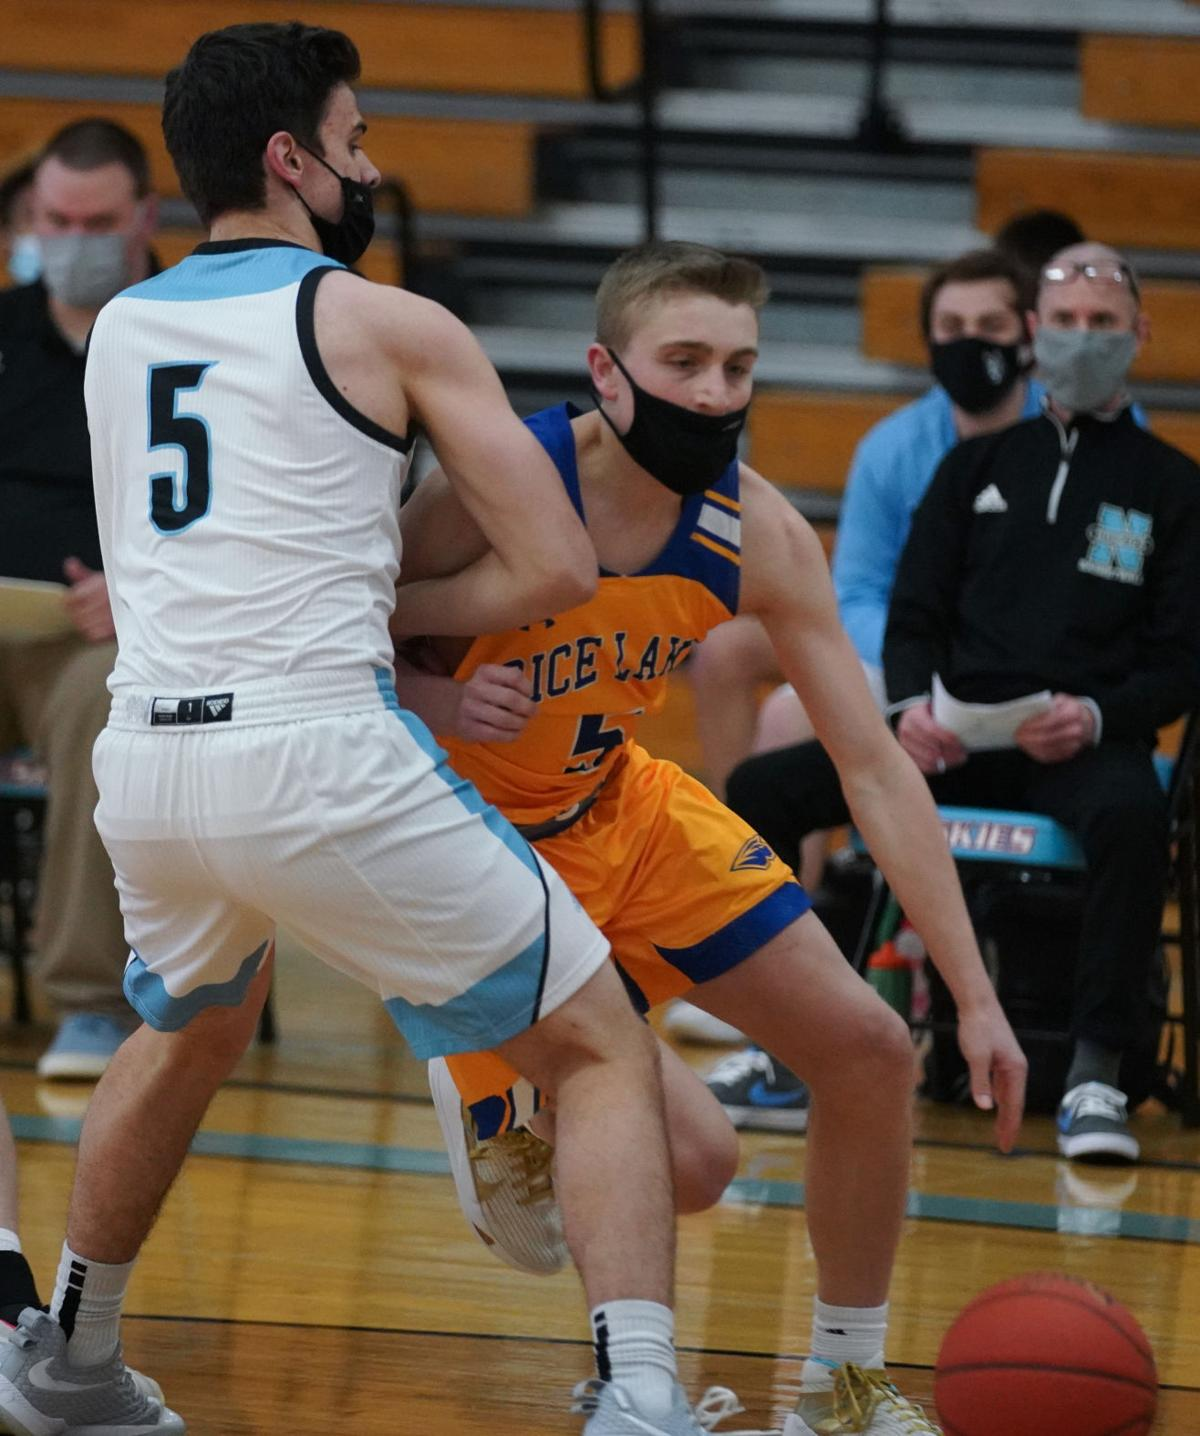 Eau Claire North Rice Lake boys basketball